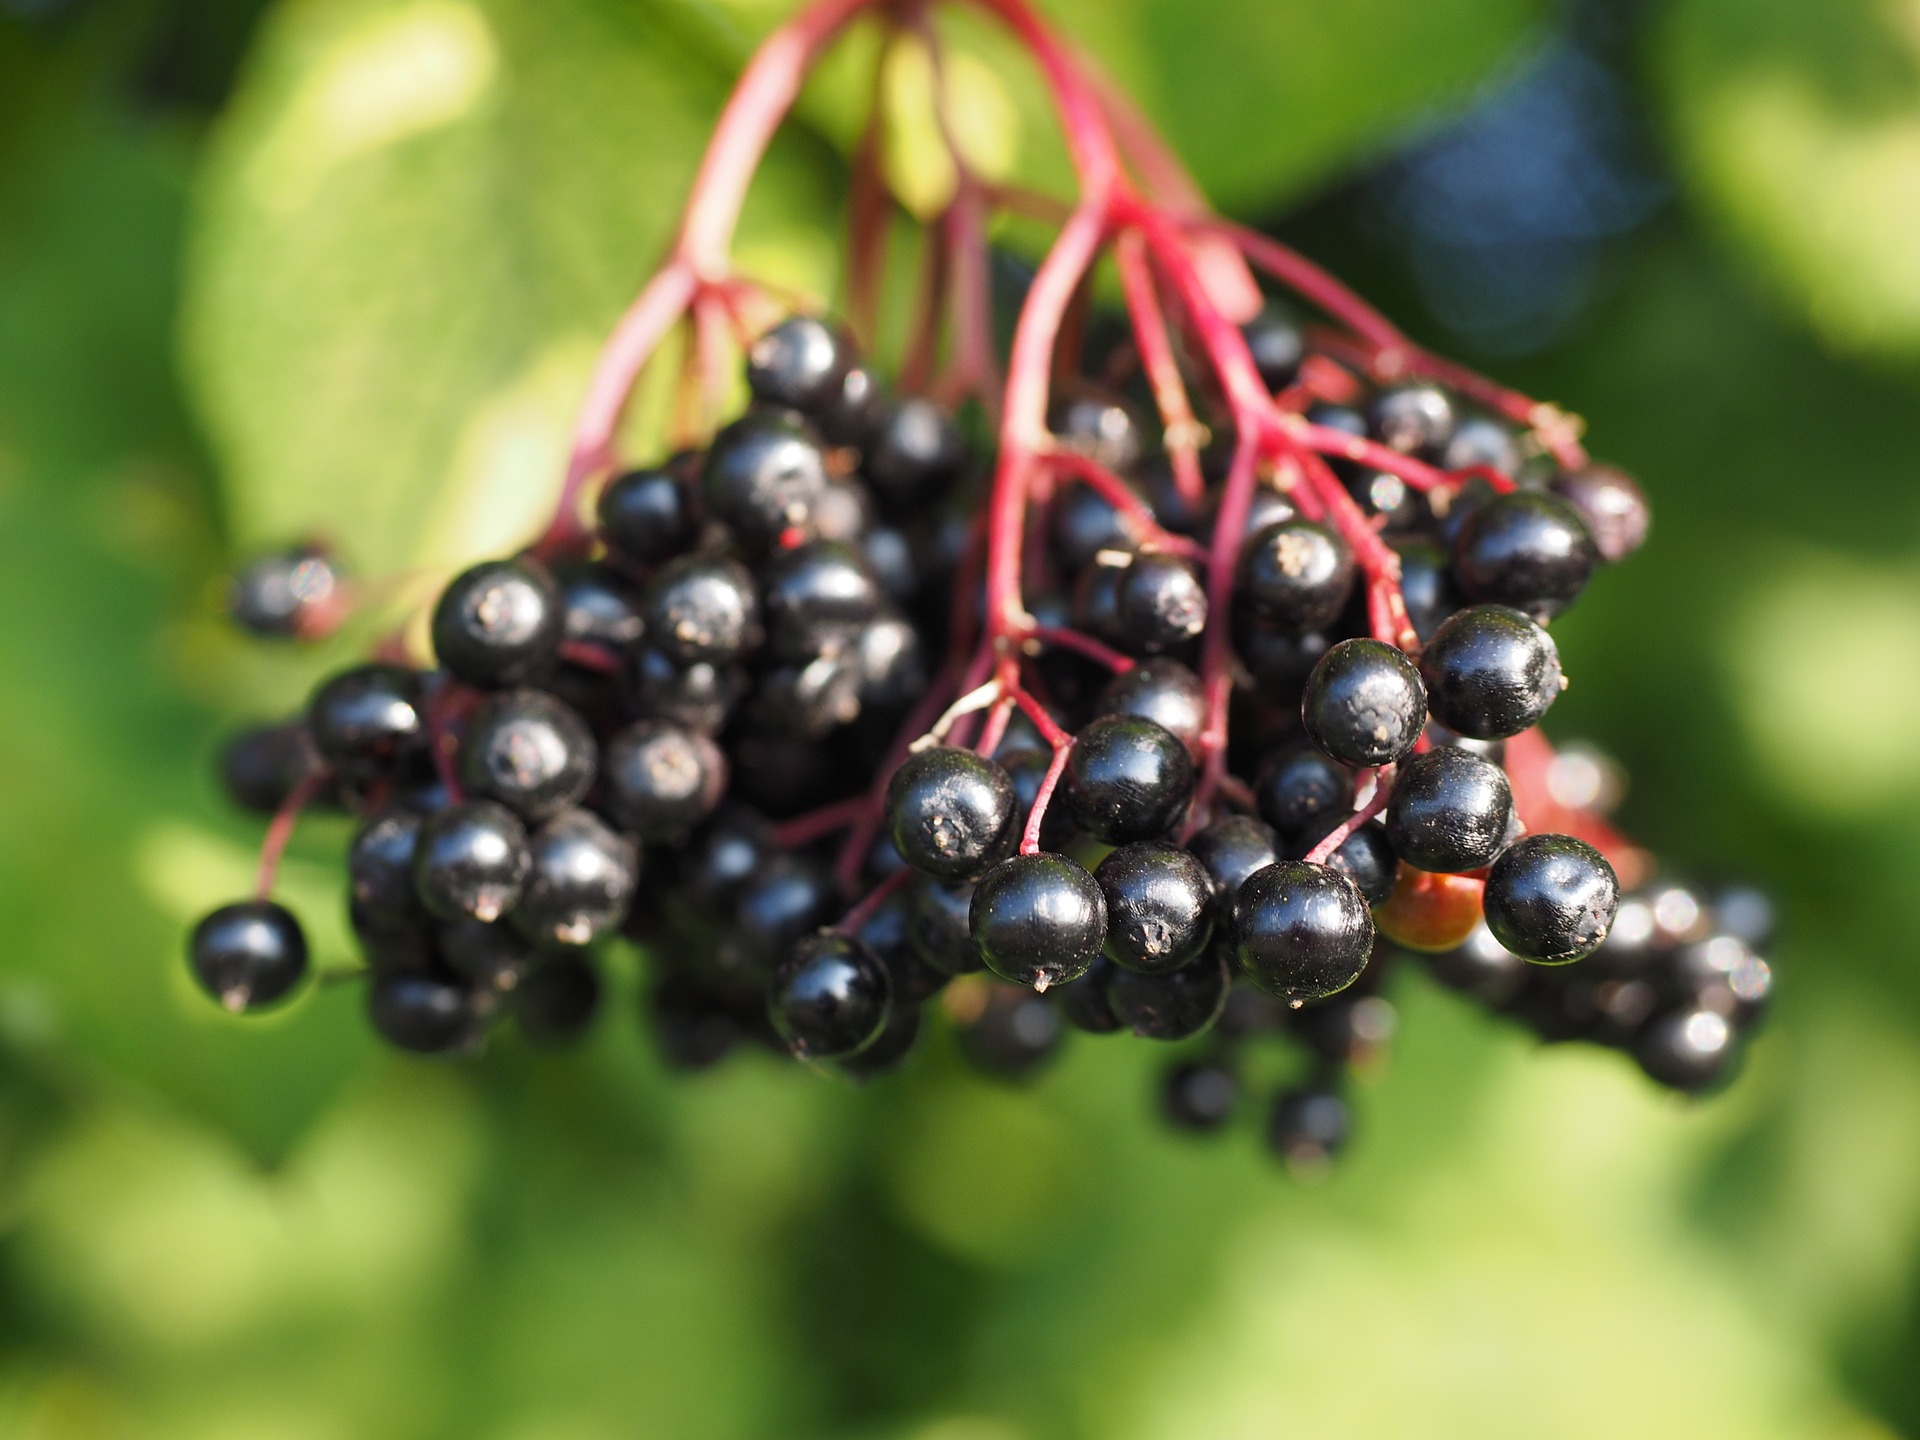 Elderberry Syrup is a must have in any natural medicine chest. Find out how to make your own elderberry syrup at home for cold and flu prevention!